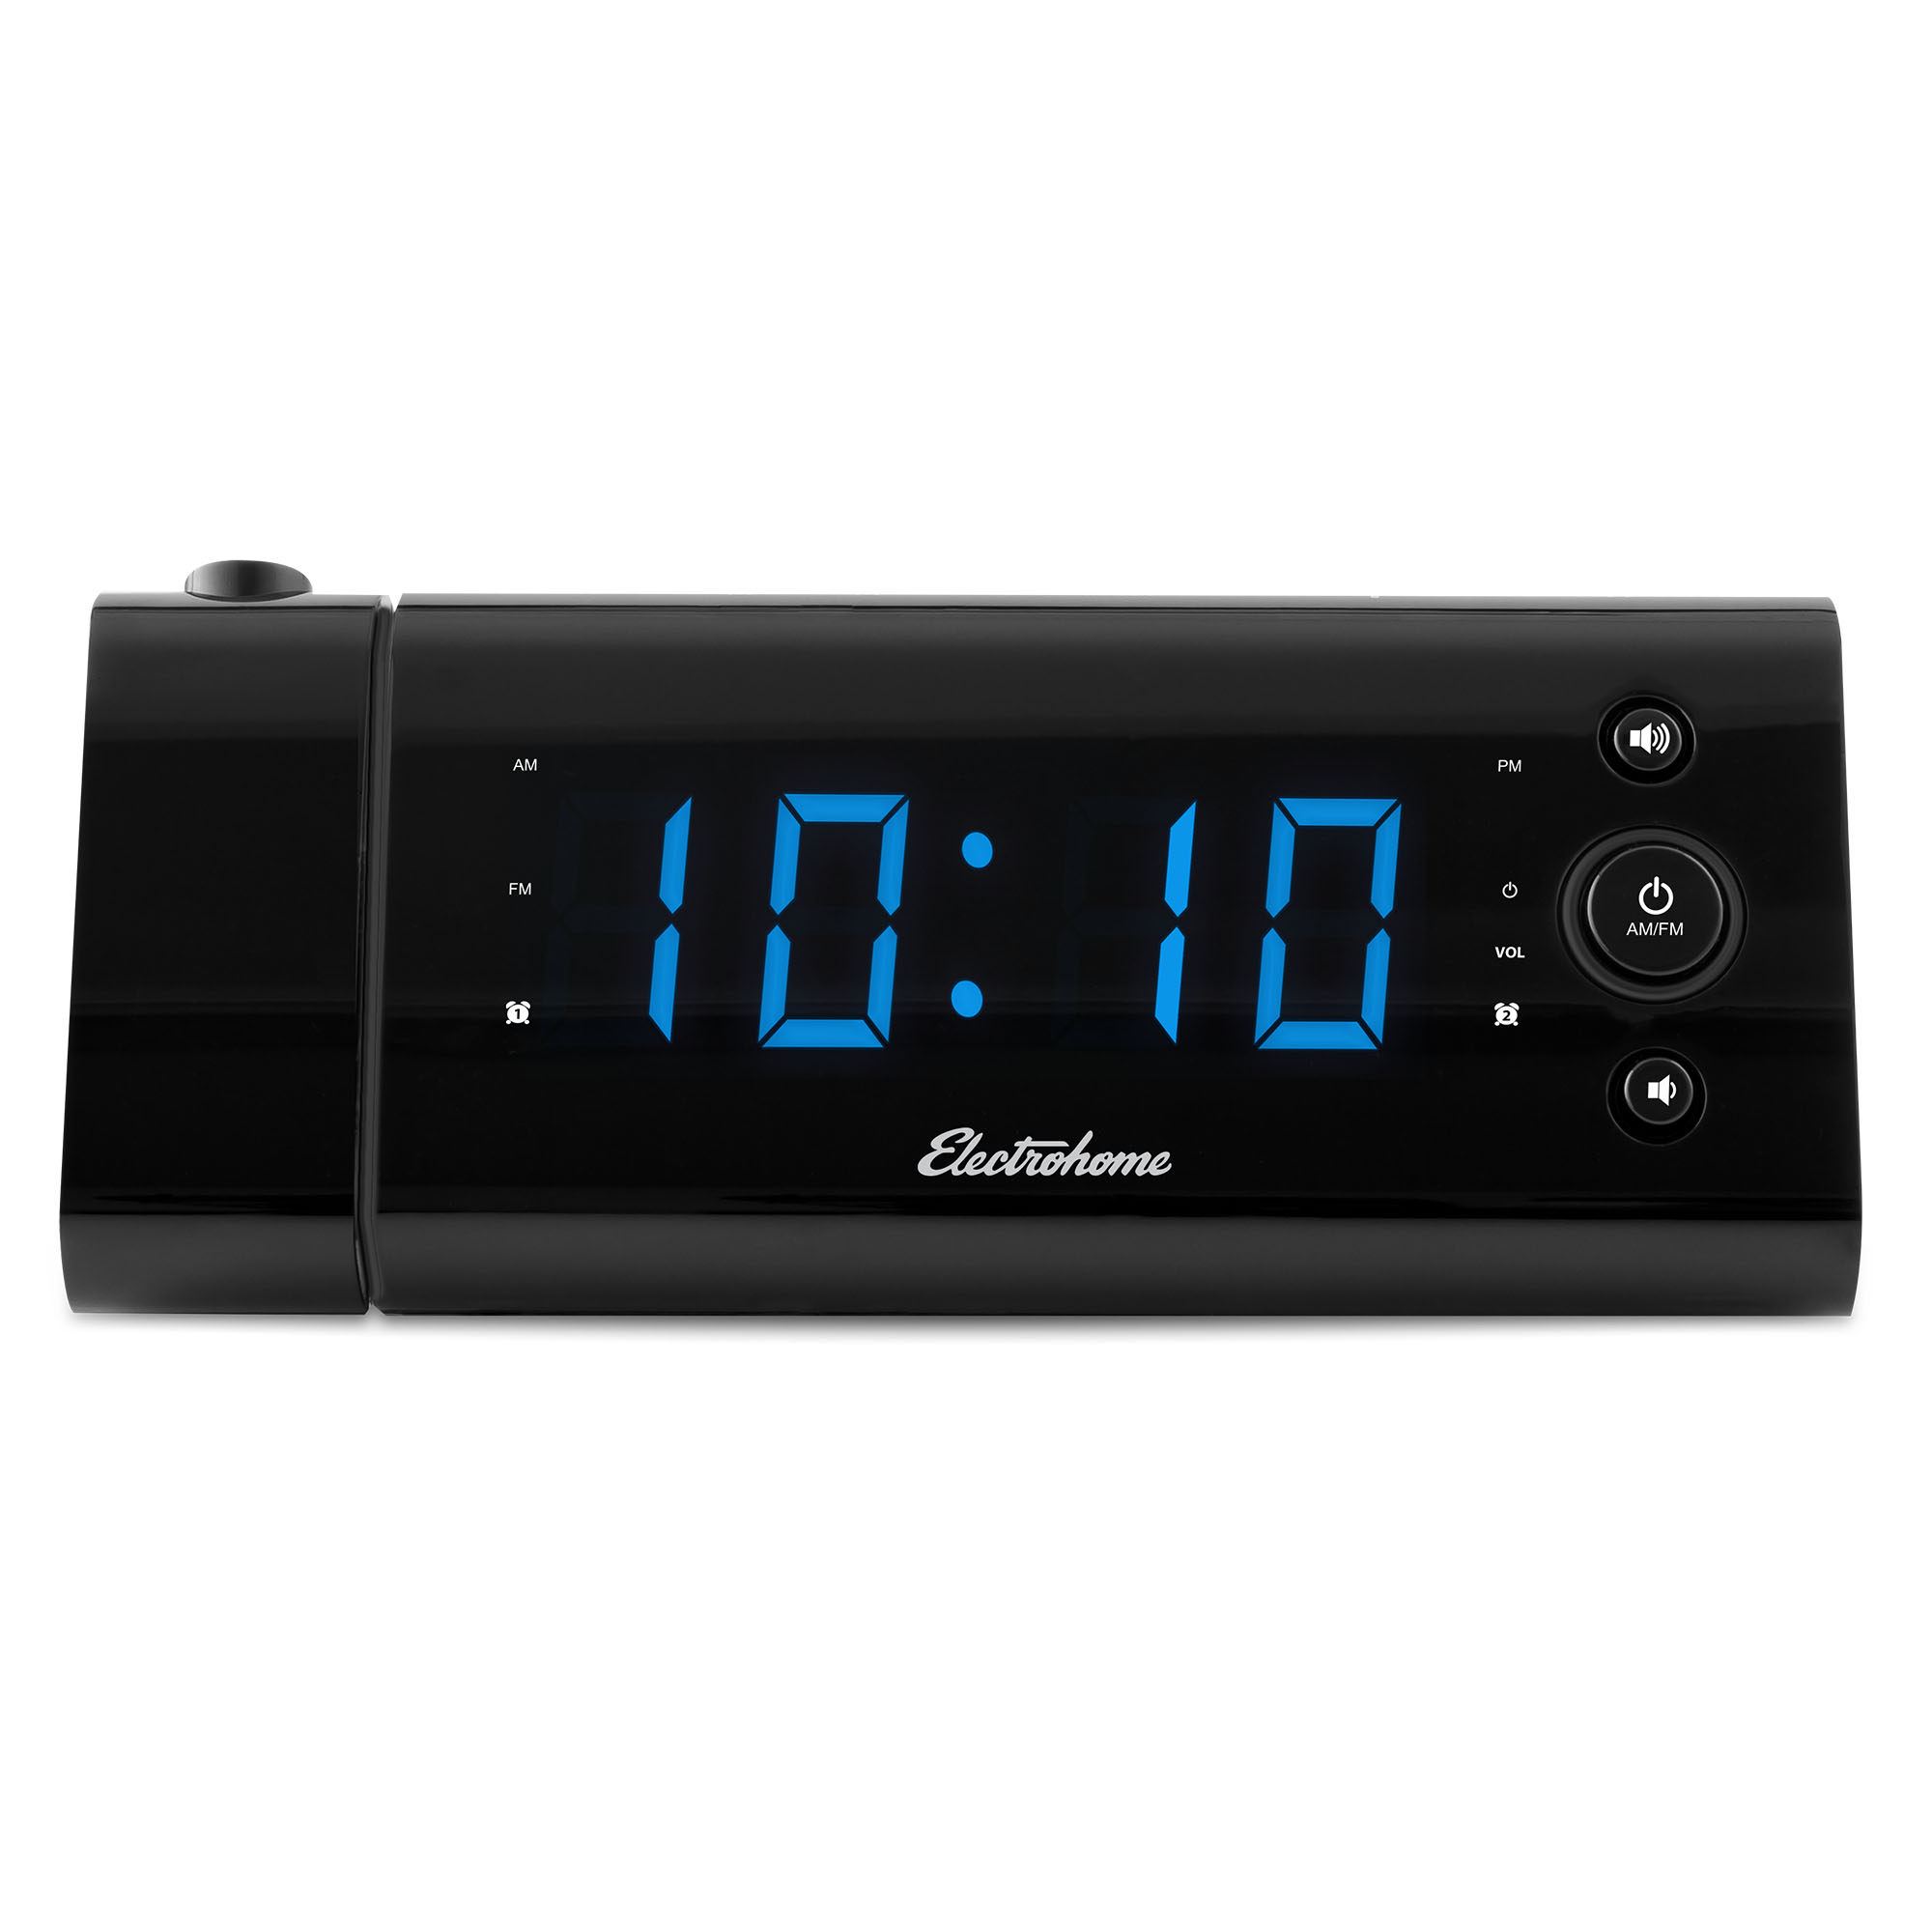 electrohome usb charging alarm clock radio with time projection ebay. Black Bedroom Furniture Sets. Home Design Ideas